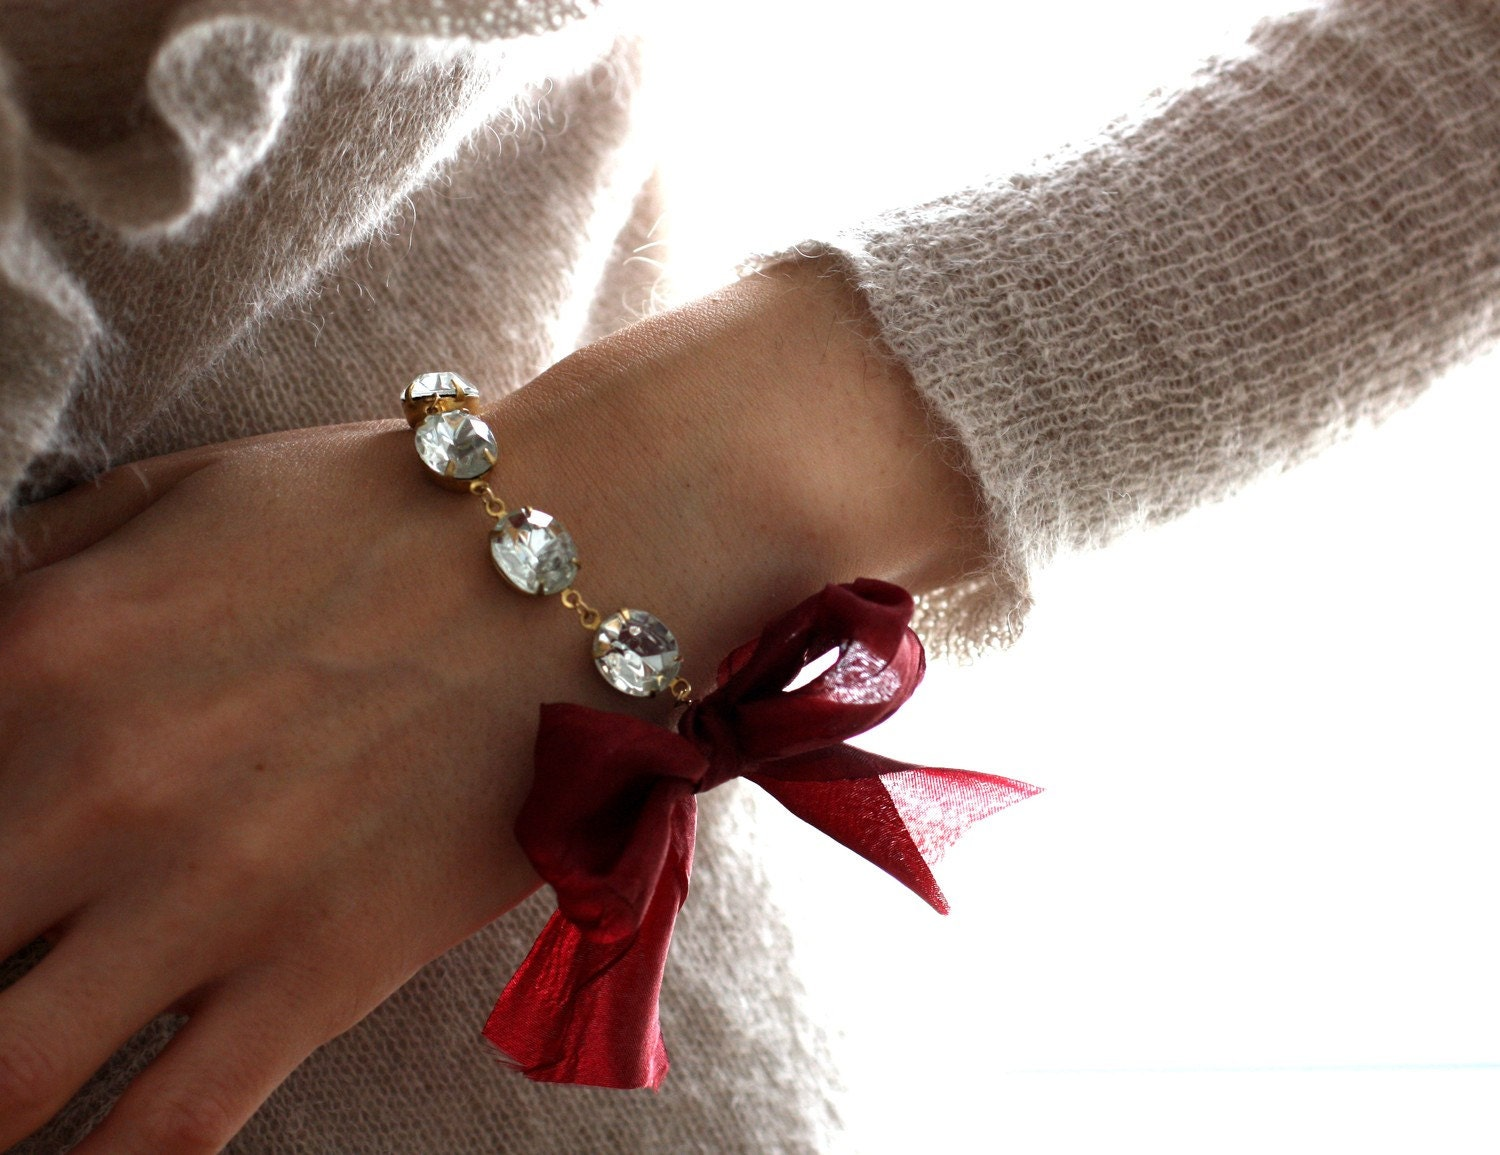 Vintage Jewel Bracelet with Wine Ribbon. The Duchess